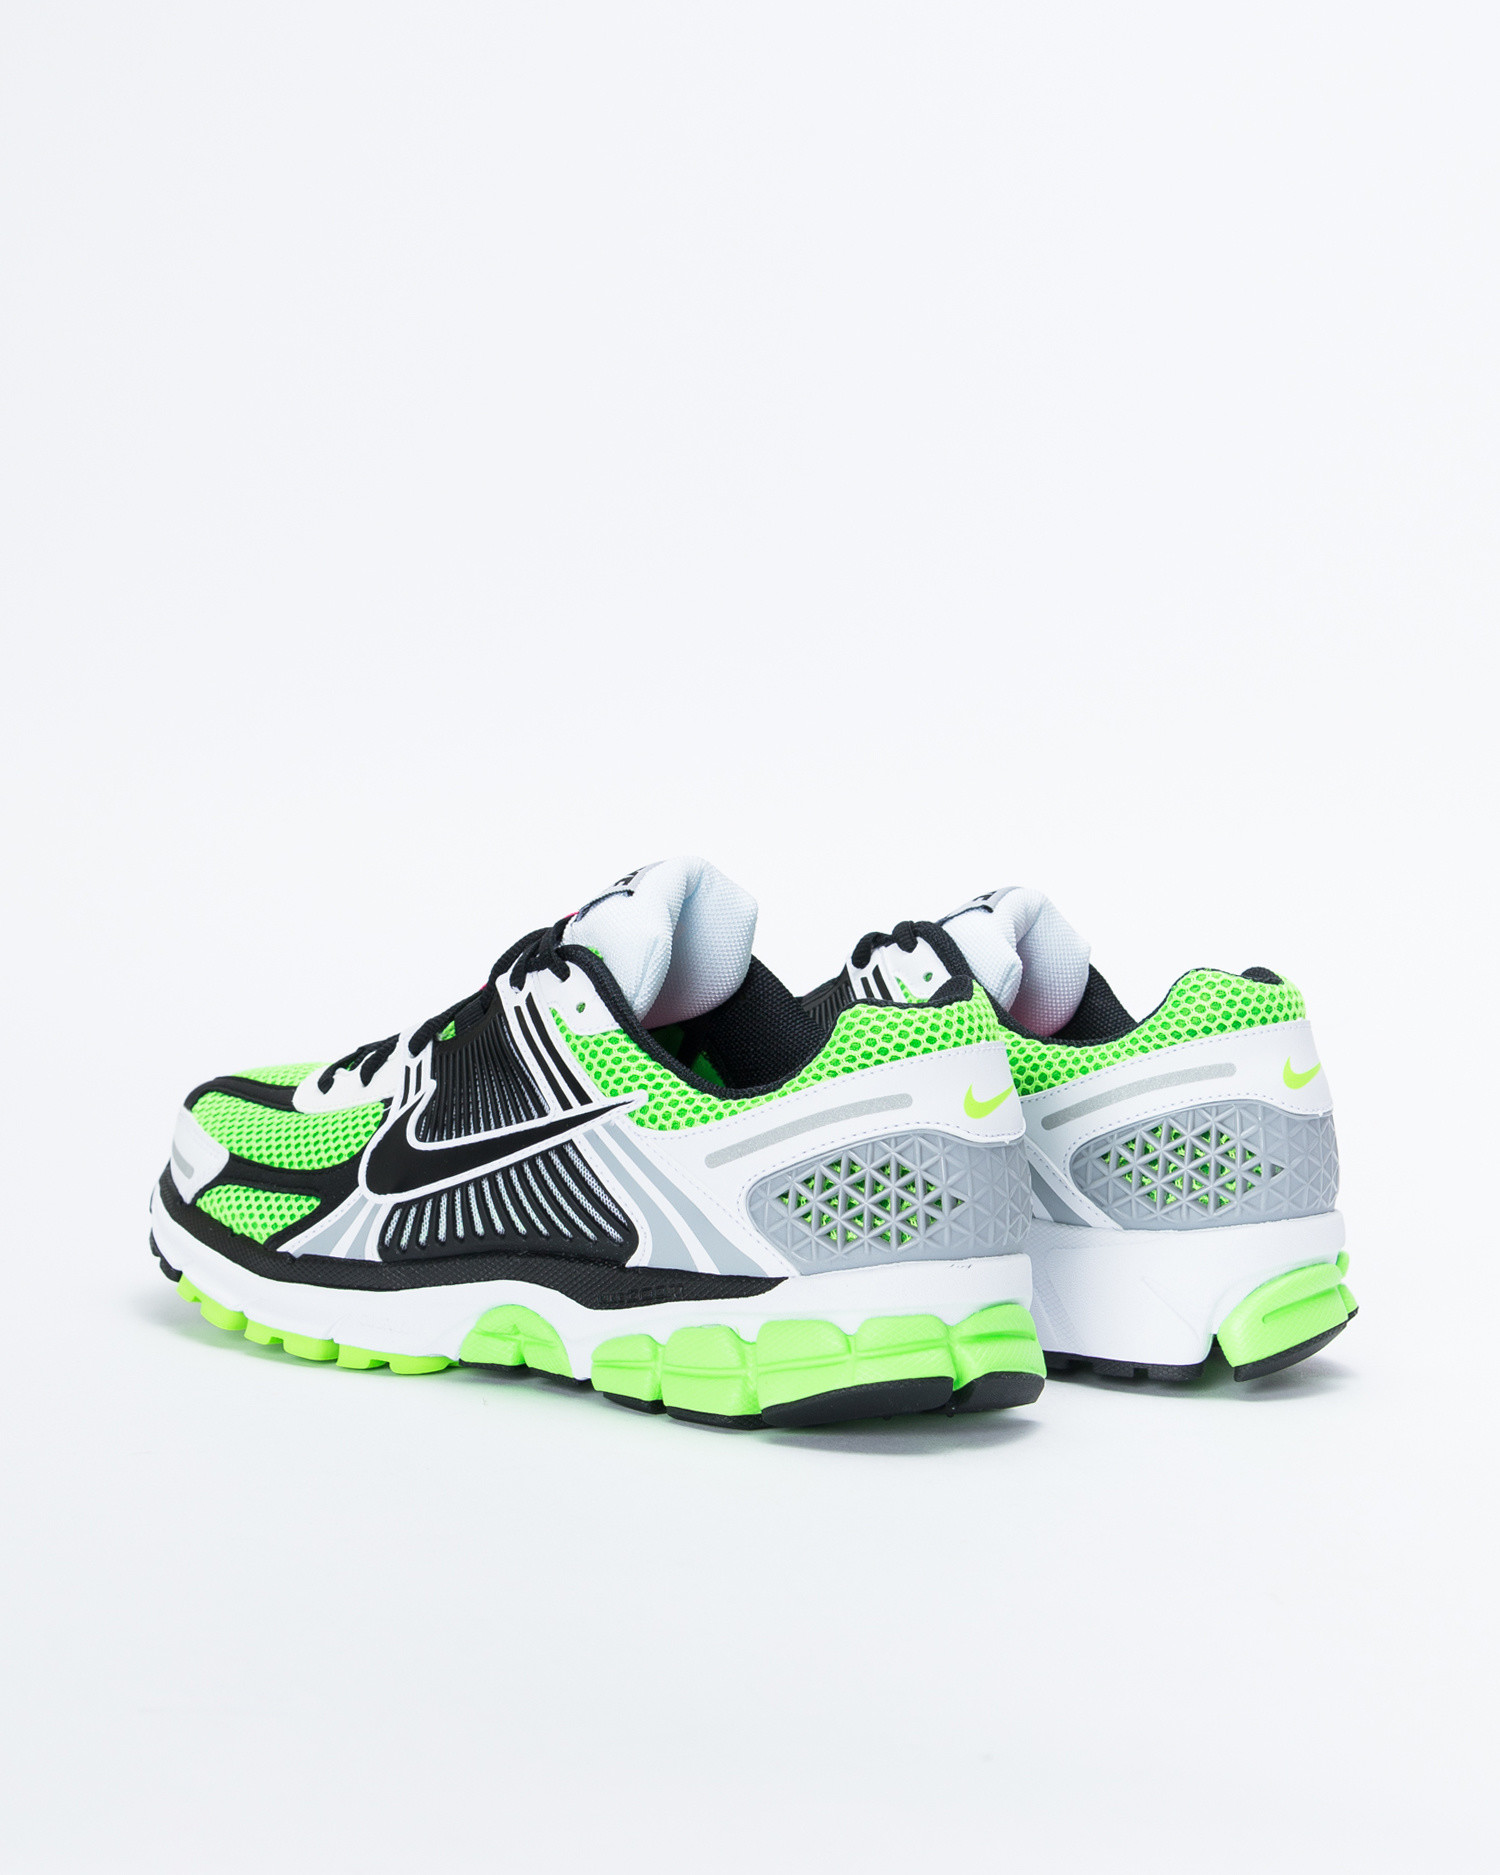 Nike Zoom Grey And Green Nike Nike Zoom Vomero 5 Se Sp Electric Green Black White Sail